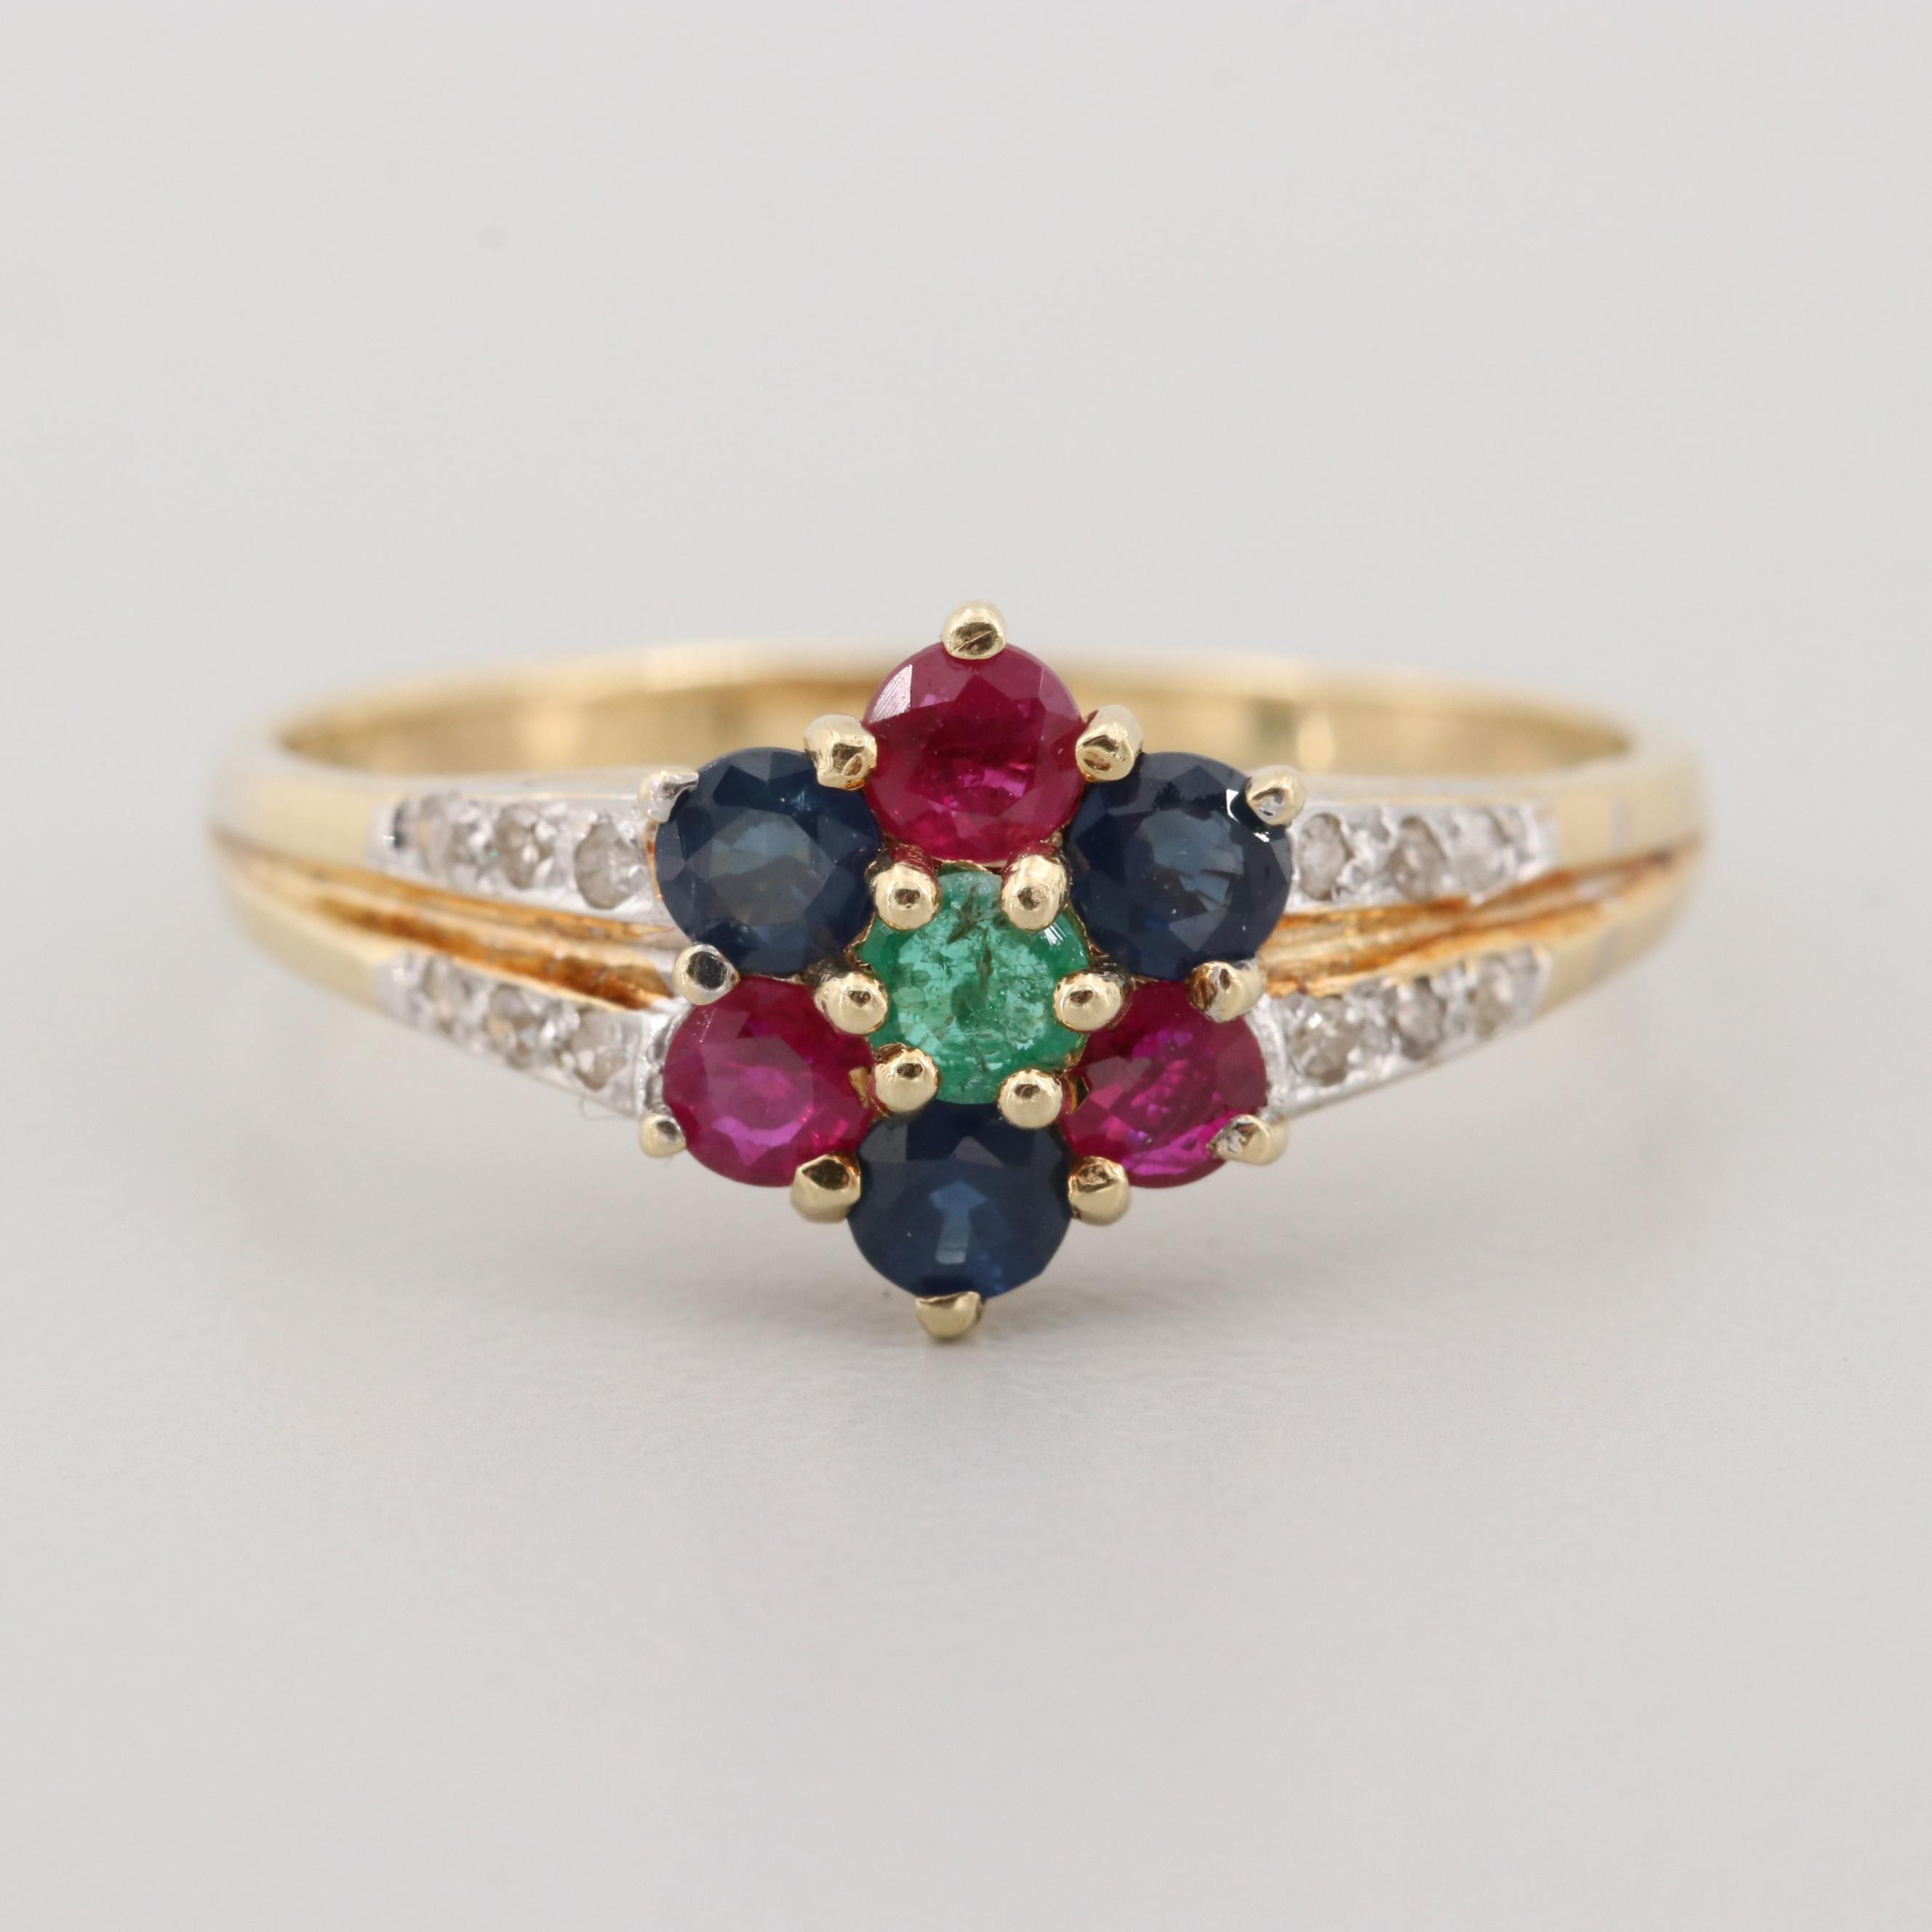 14K Yellow Gold Emerald, Ruby, Blue Sapphire, and Diamond Ring